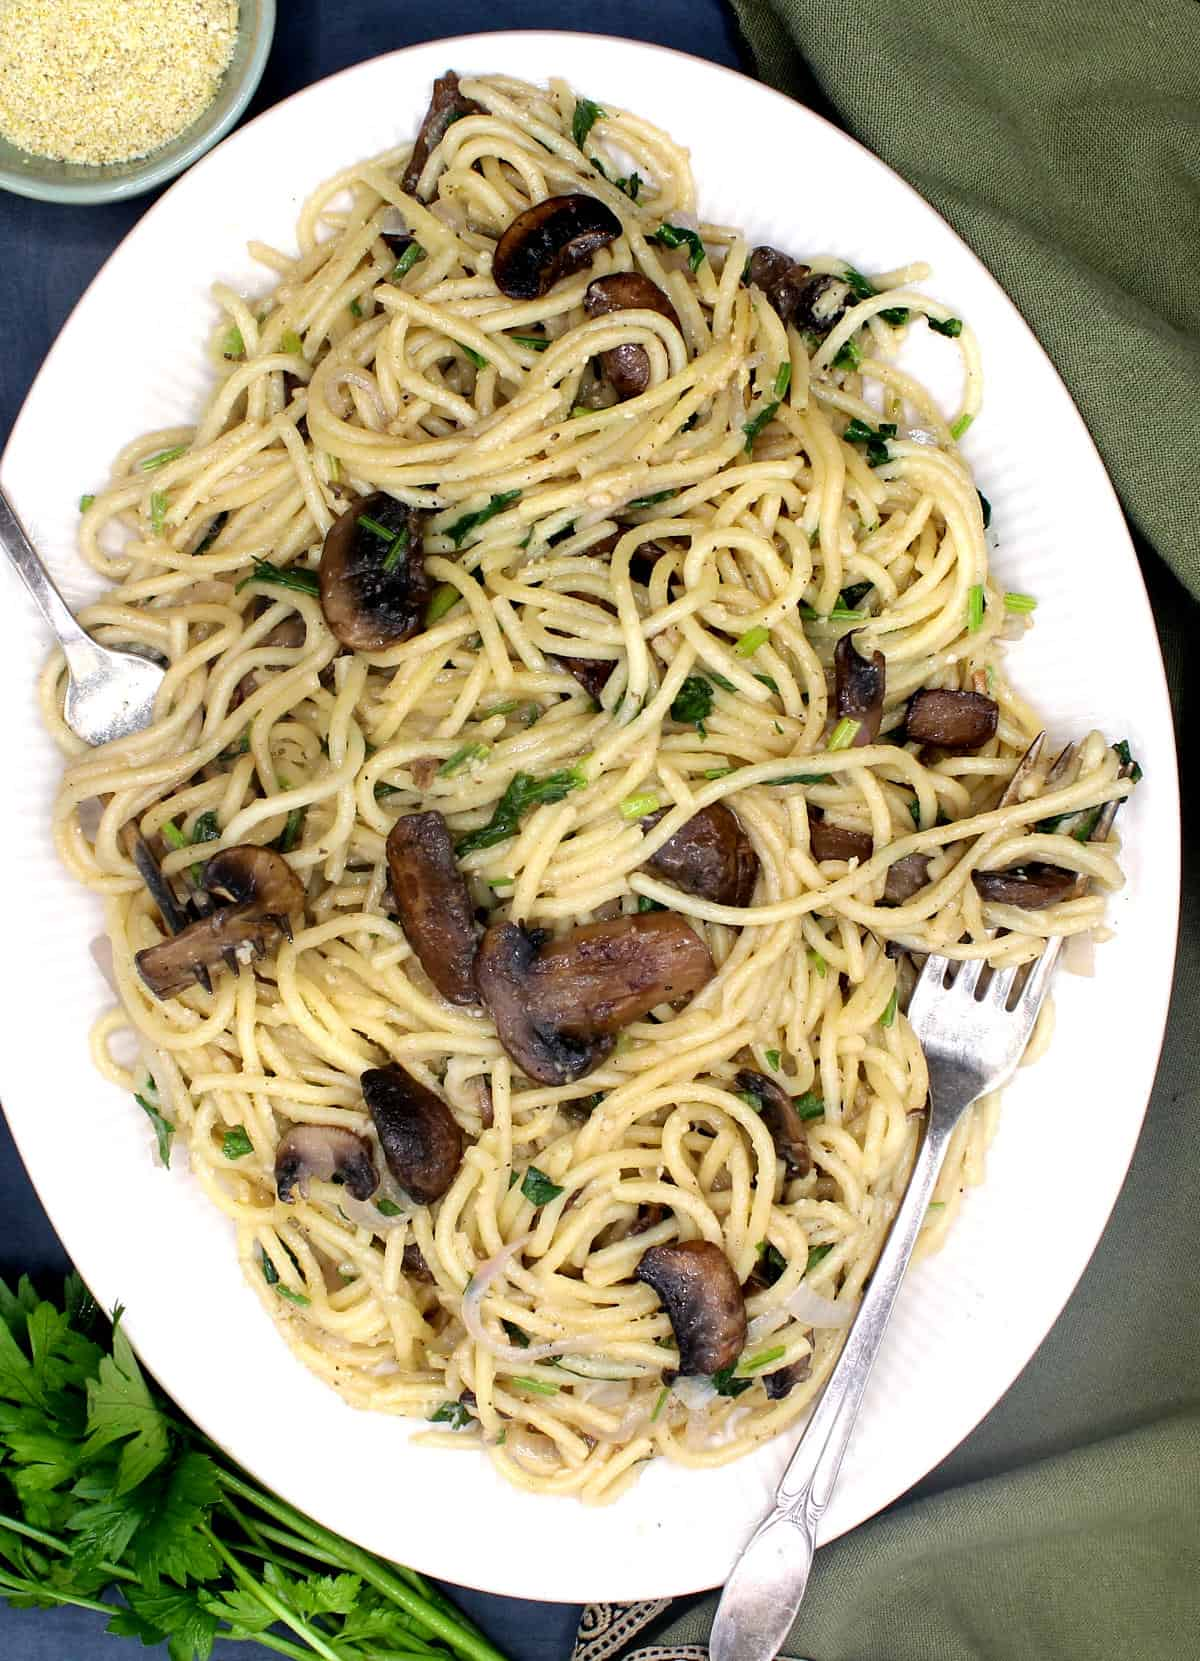 Overhead shot of a white, oval platter of spaghetti with crimini mushrooms, parsley and shallots. Two forks, a bunch of parsley and a green napkin are also in the picture.